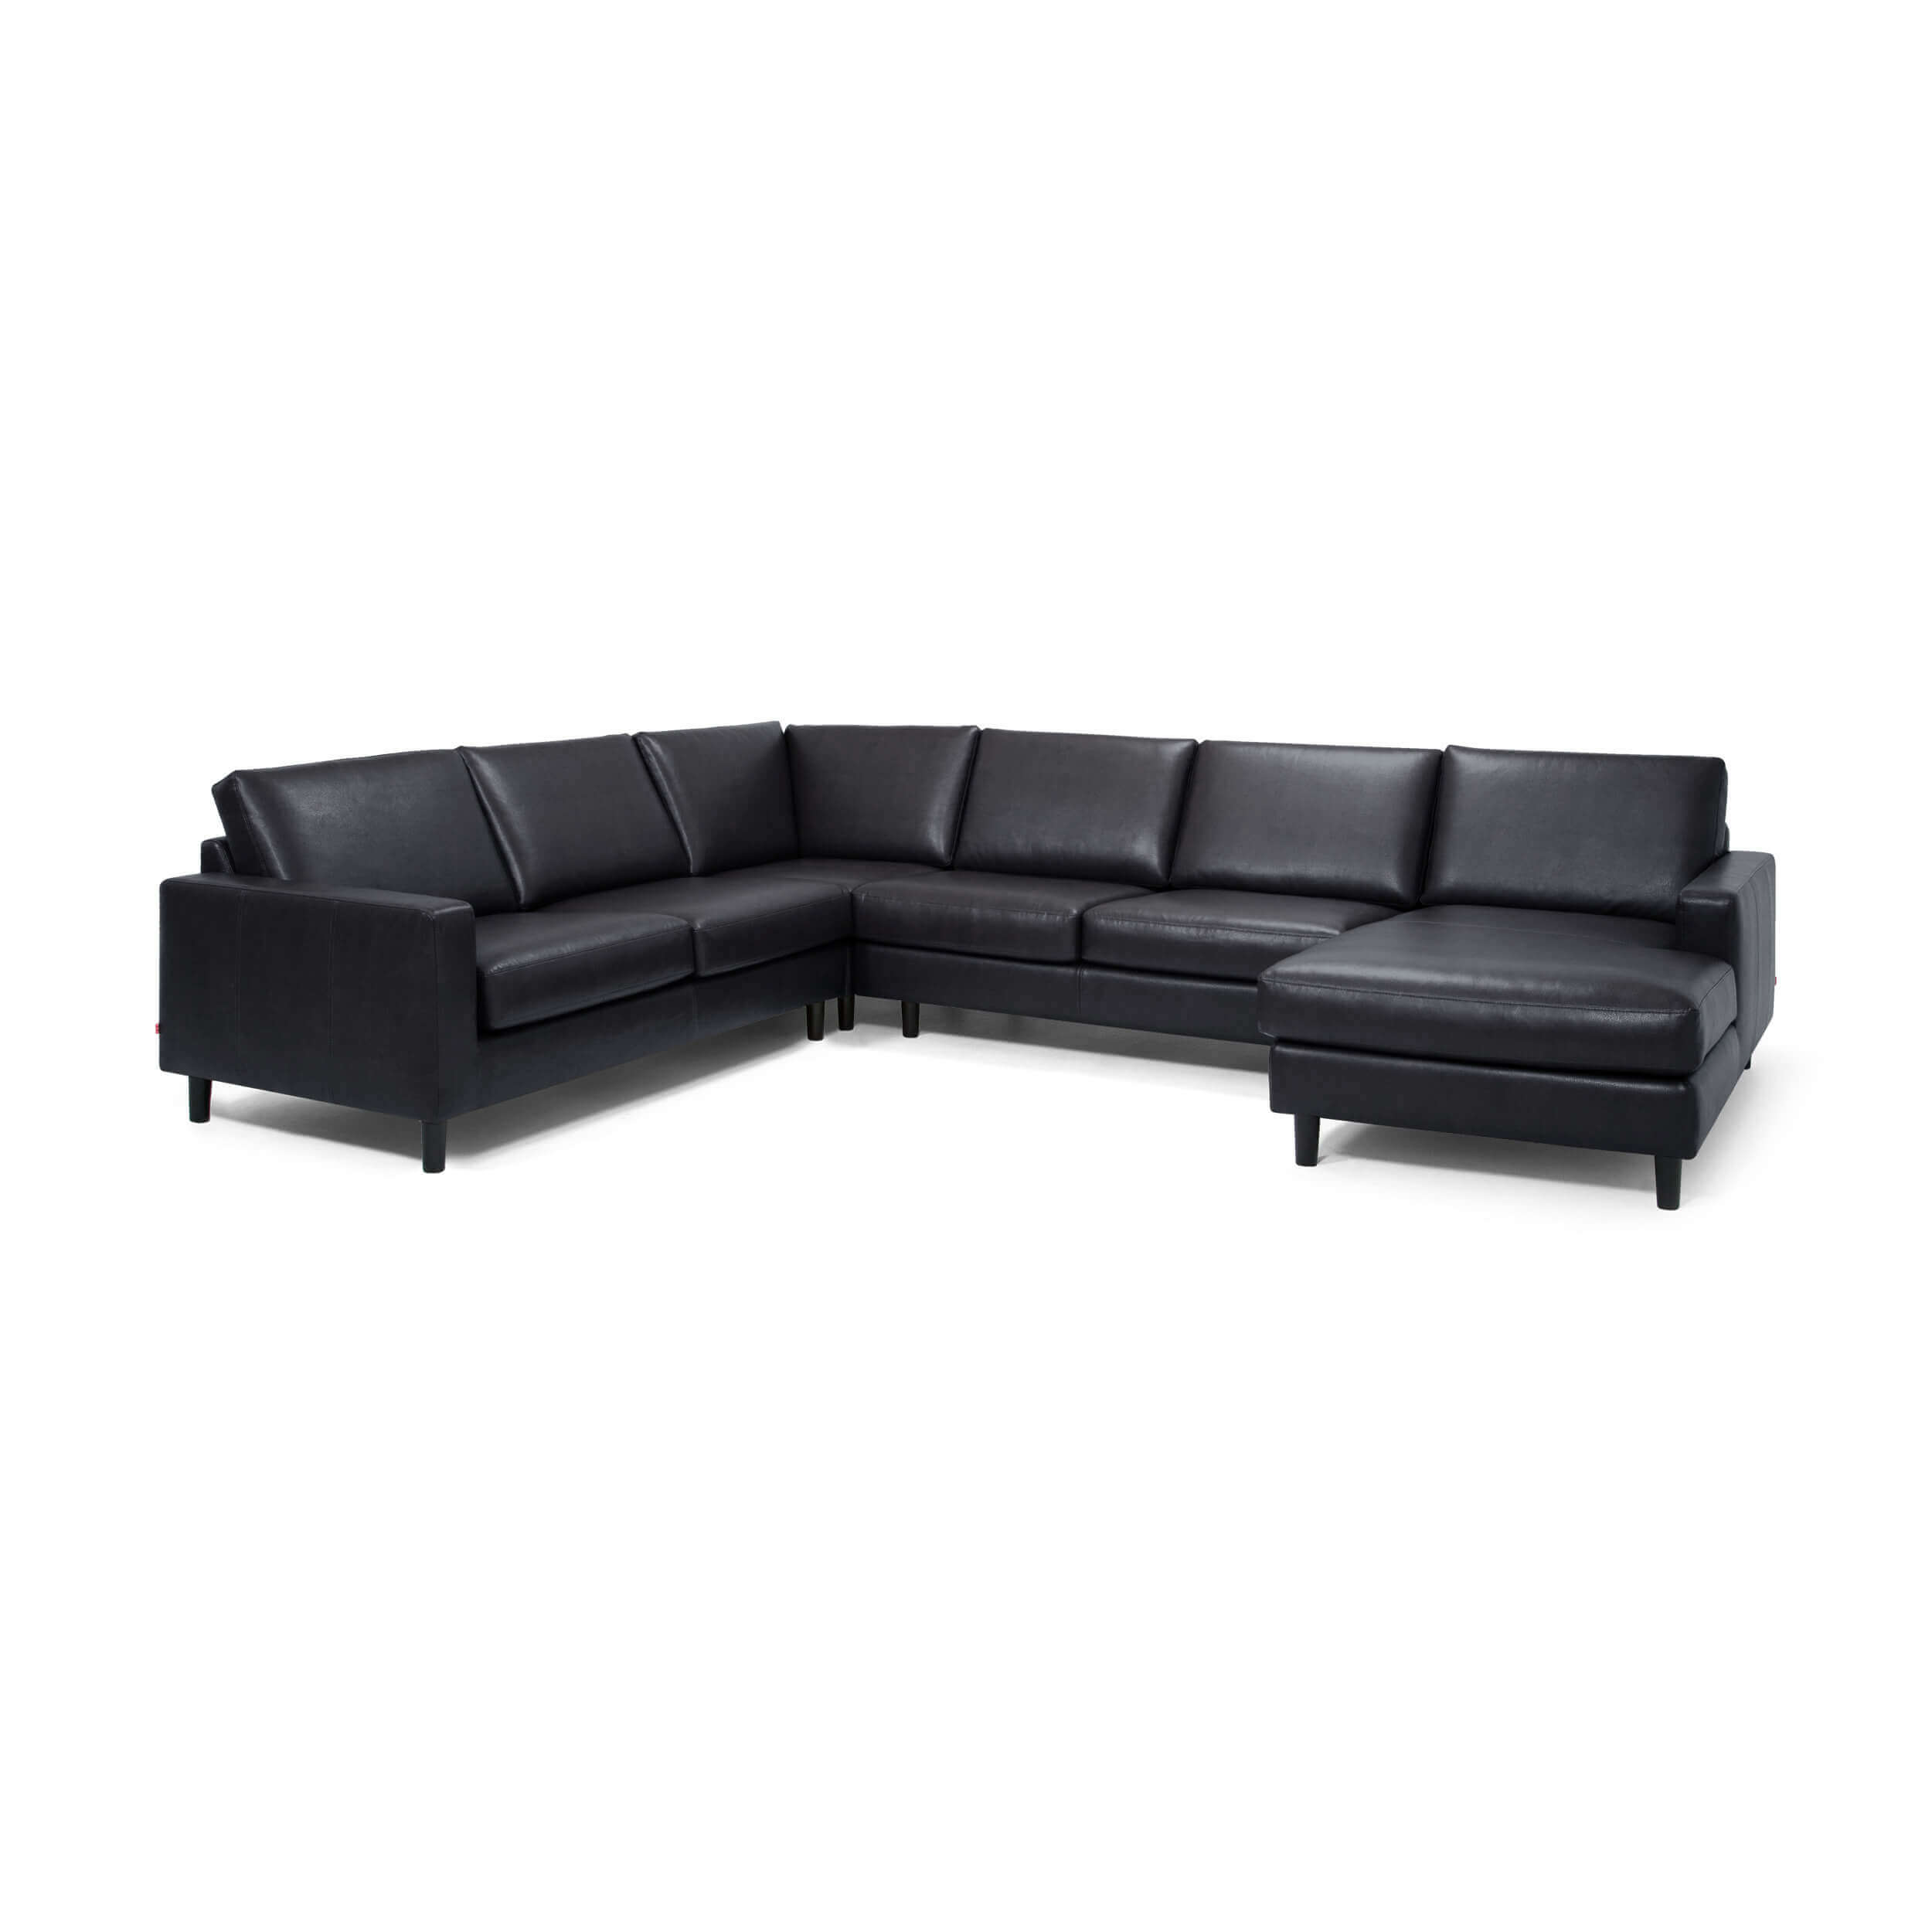 Modern Sectional Sofas | Seating | Living Room | EQ3